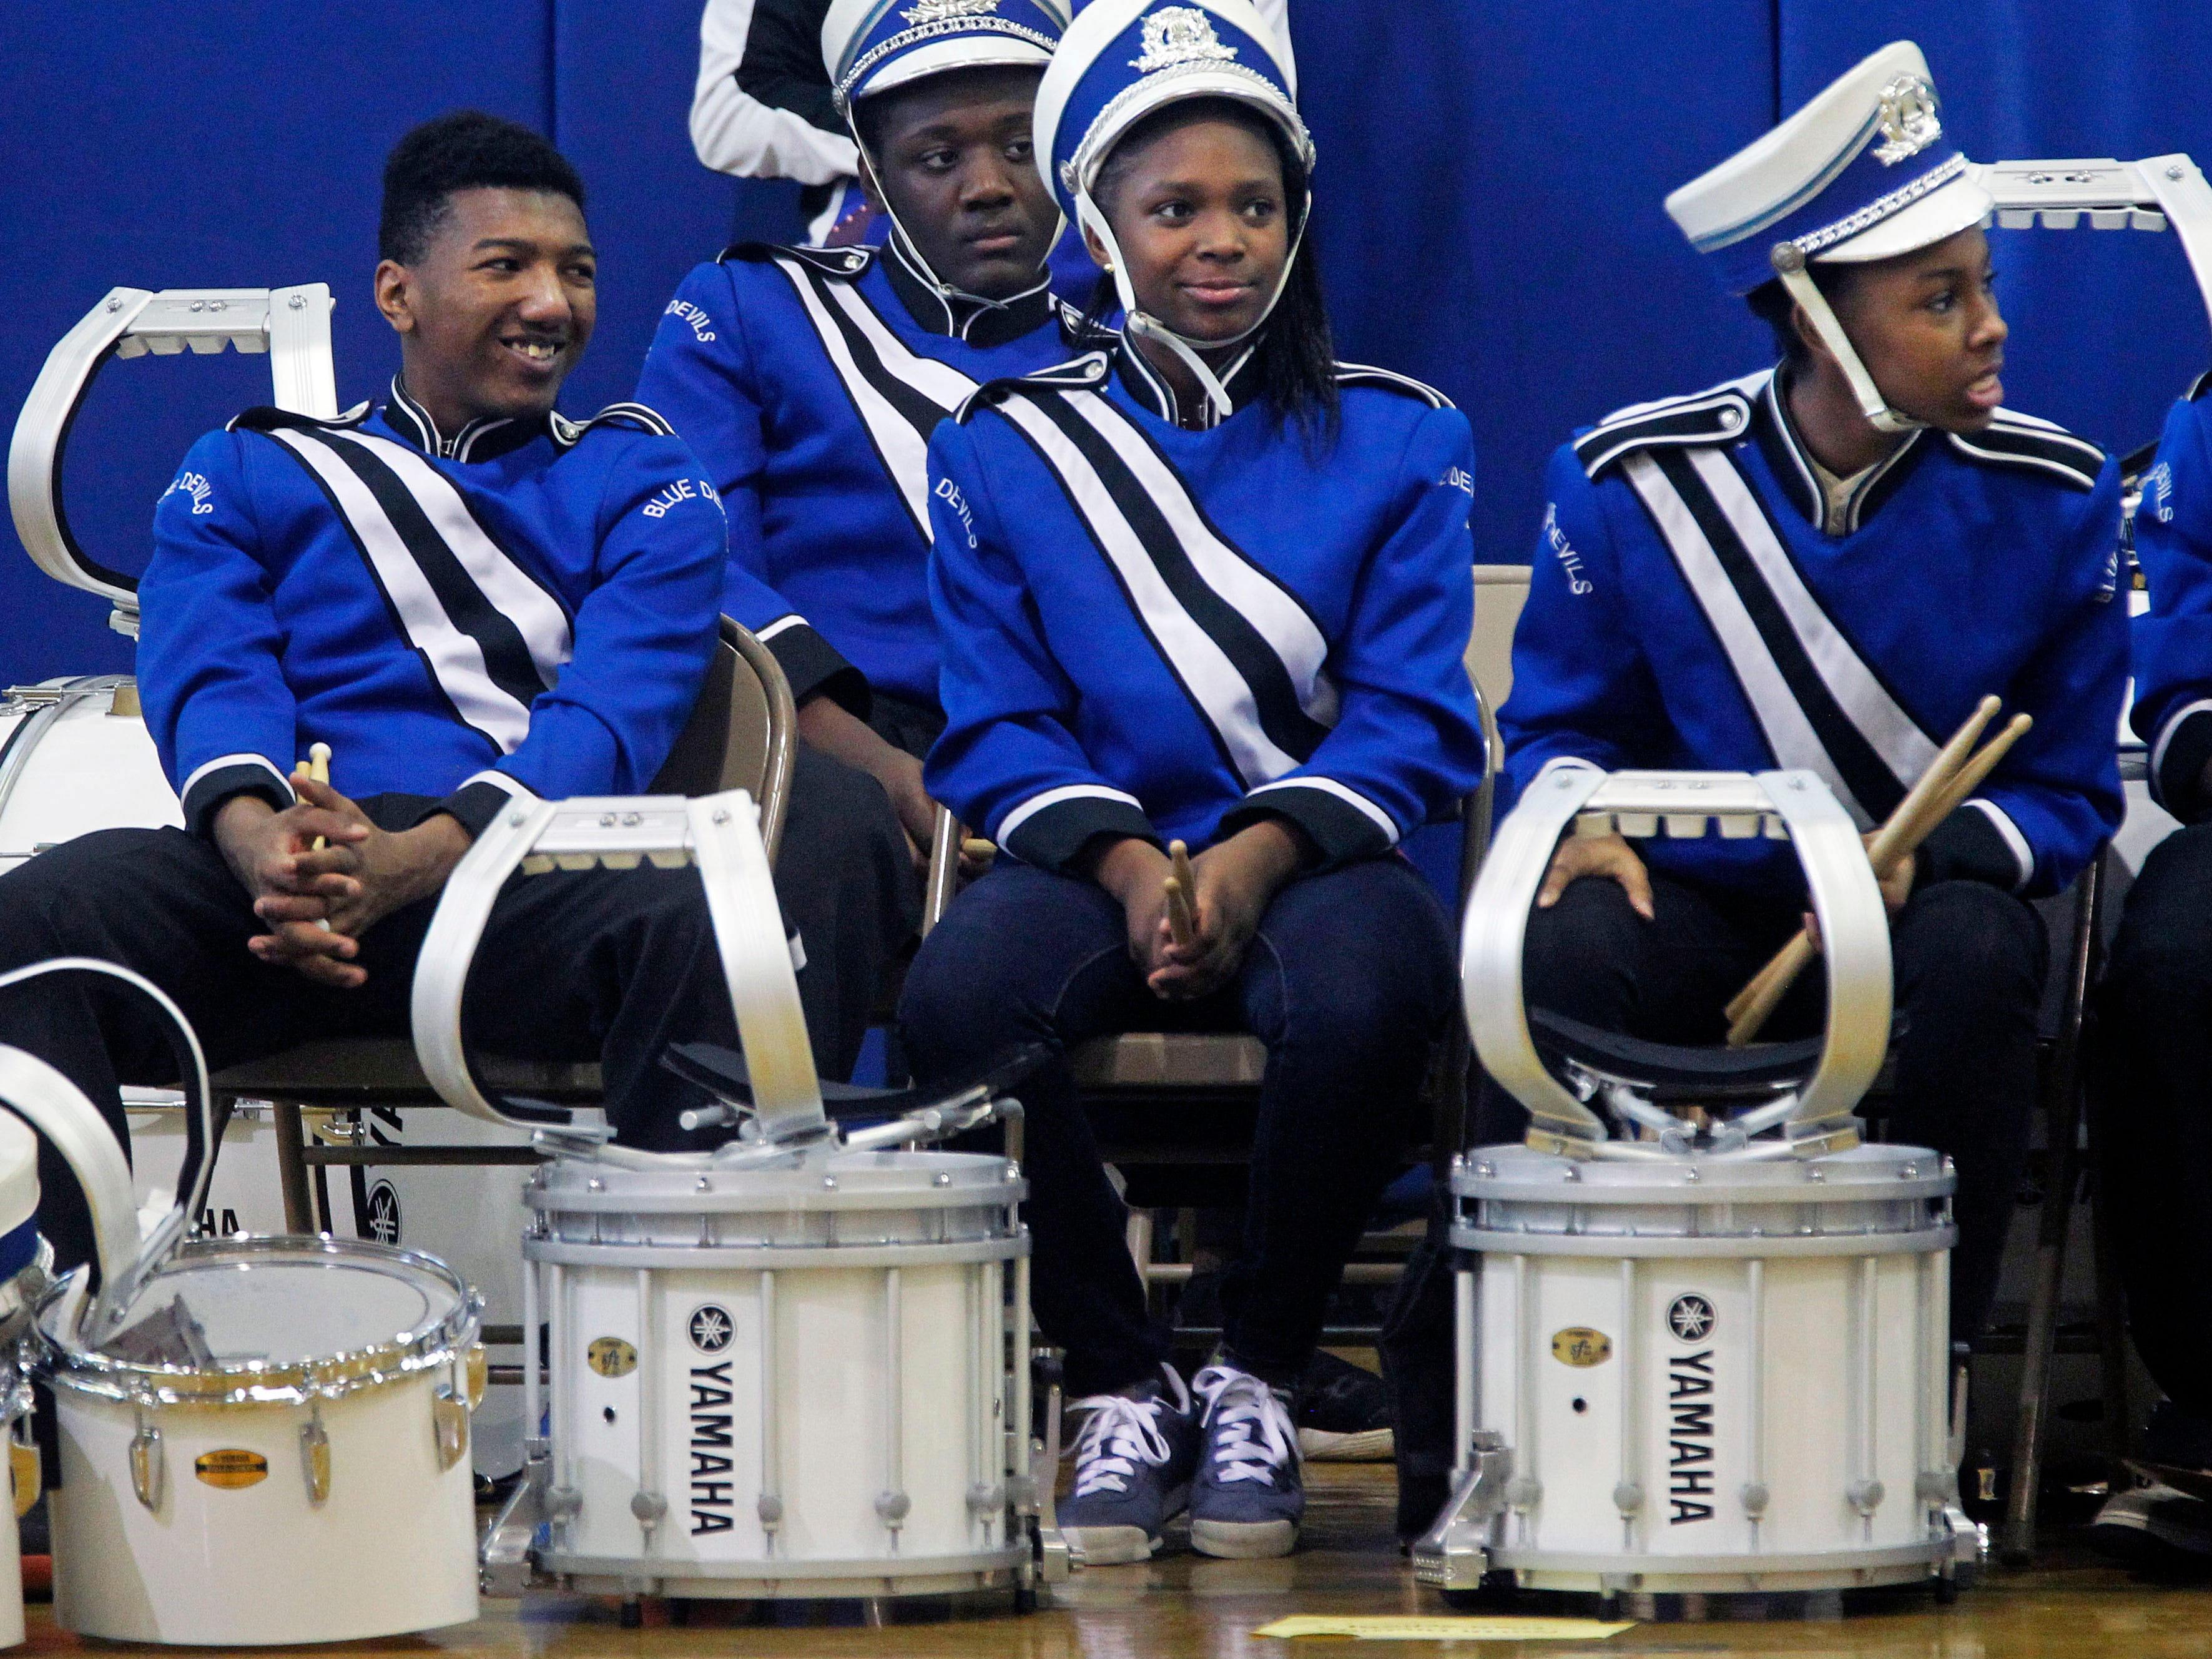 Maleak Taylor, a freshmen at North Divison High School, left, who plays quints for the drumline at Rufus King High School, watches band competition with other classmates, Aniya Taylor and Erica Wilborn, right,  at the MPS Hosts City Drumline Competition on Saturday, Dec. 8, 2018.